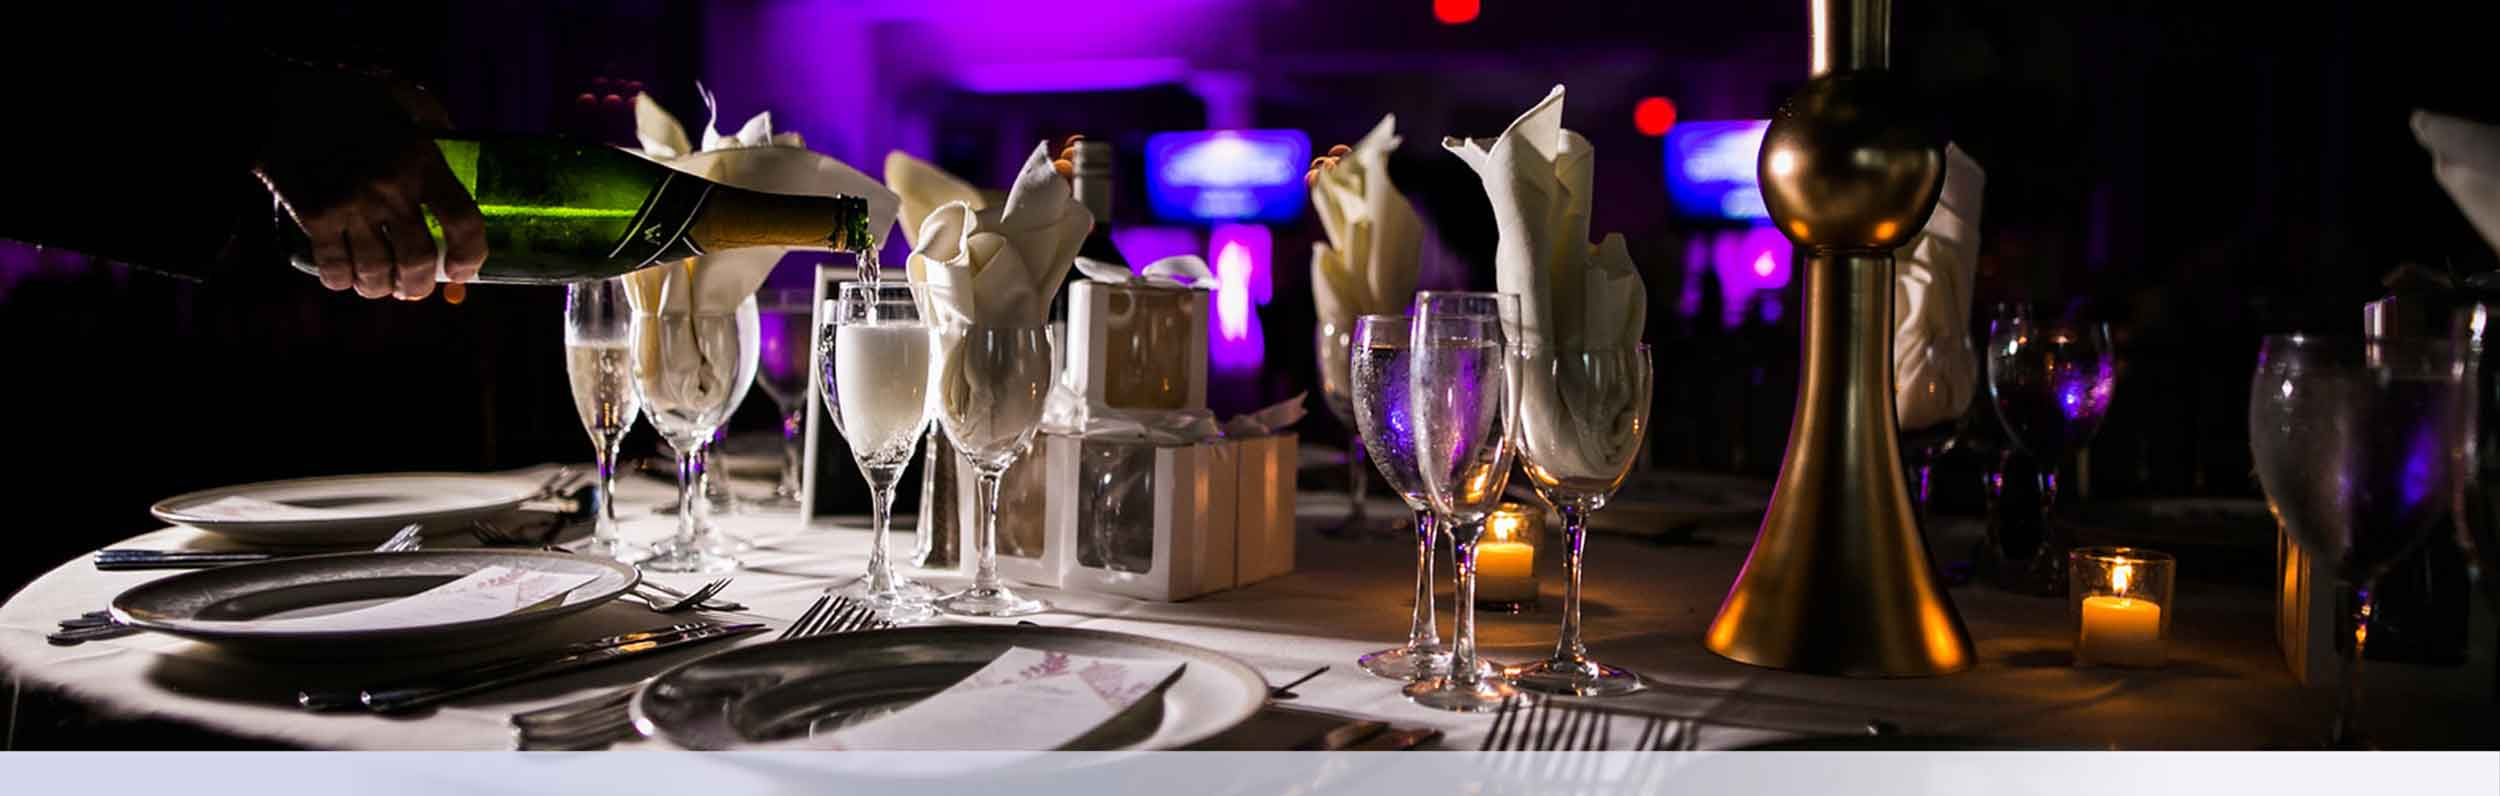 Stirling New Jersey Wedding Catering Server